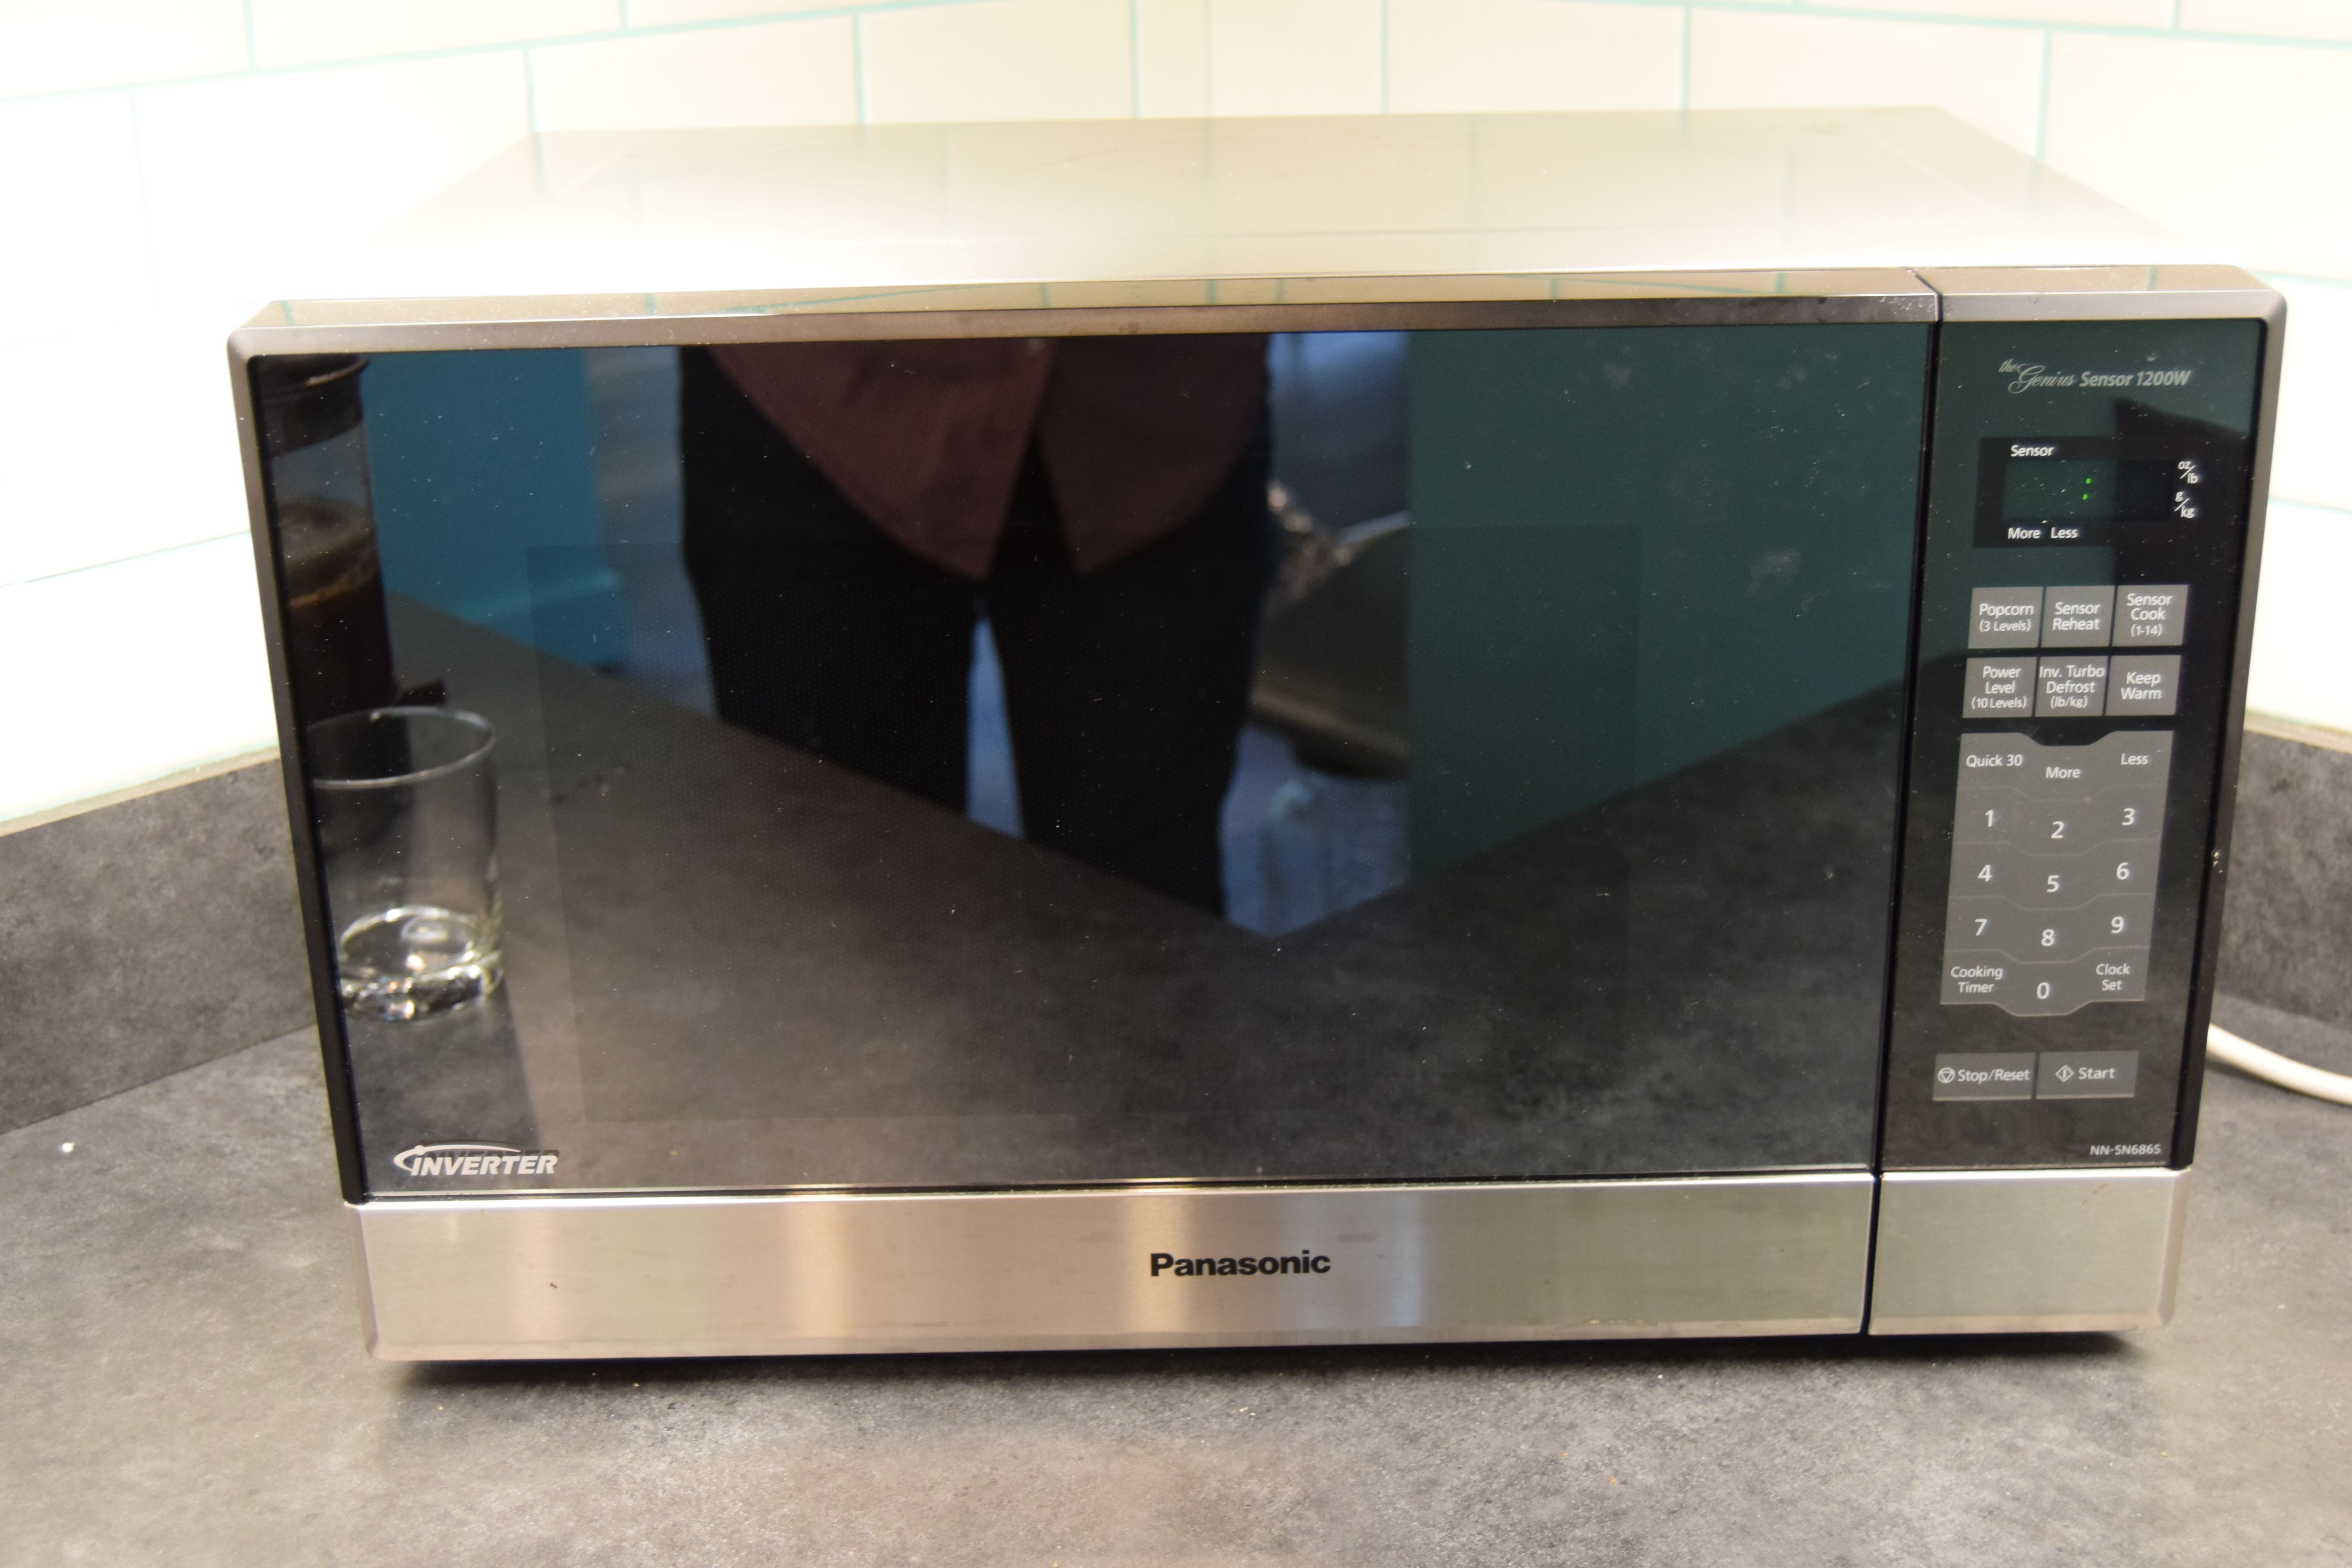 43 Panasonic Nn Sn686s Countertop Built In Microwave With